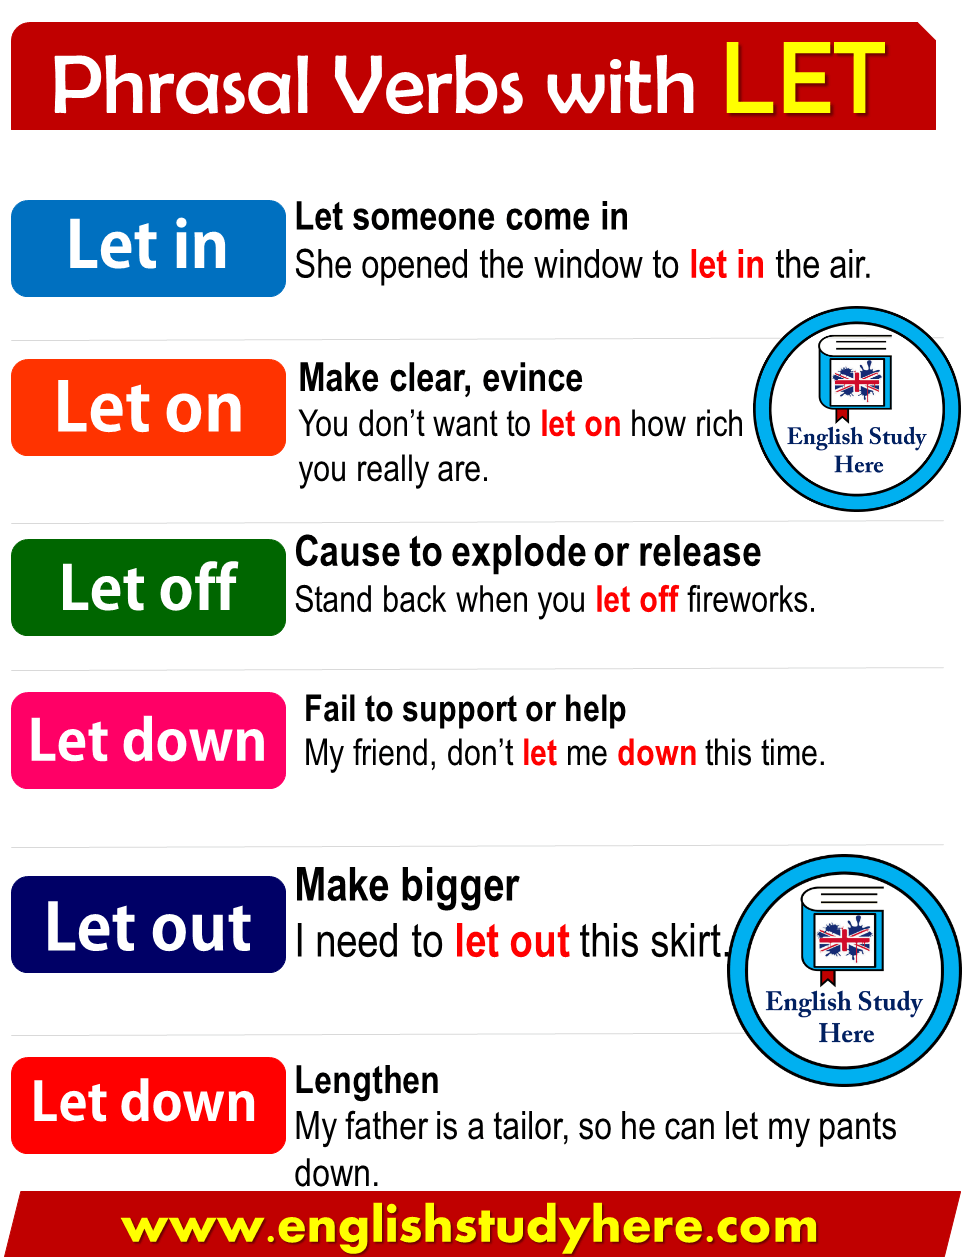 Phrasal Verbs with LET in English